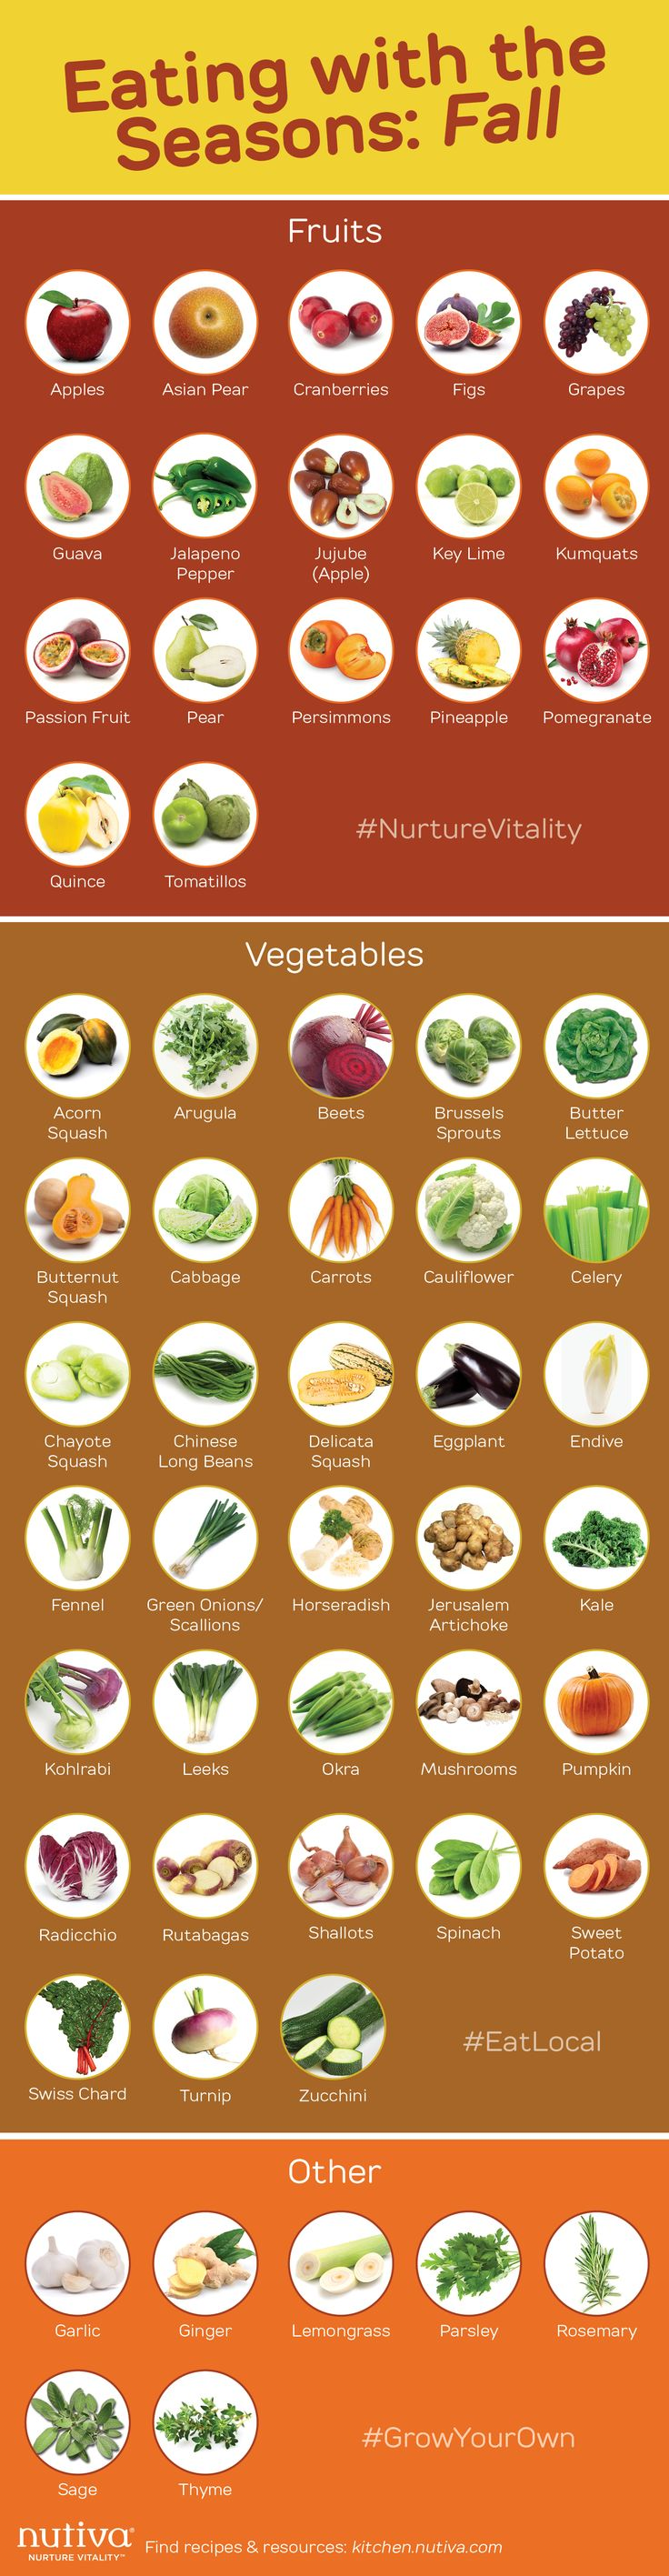 Eating with the Seasons Fall graphic Pinterest kitchen.nutiva.com Infographic